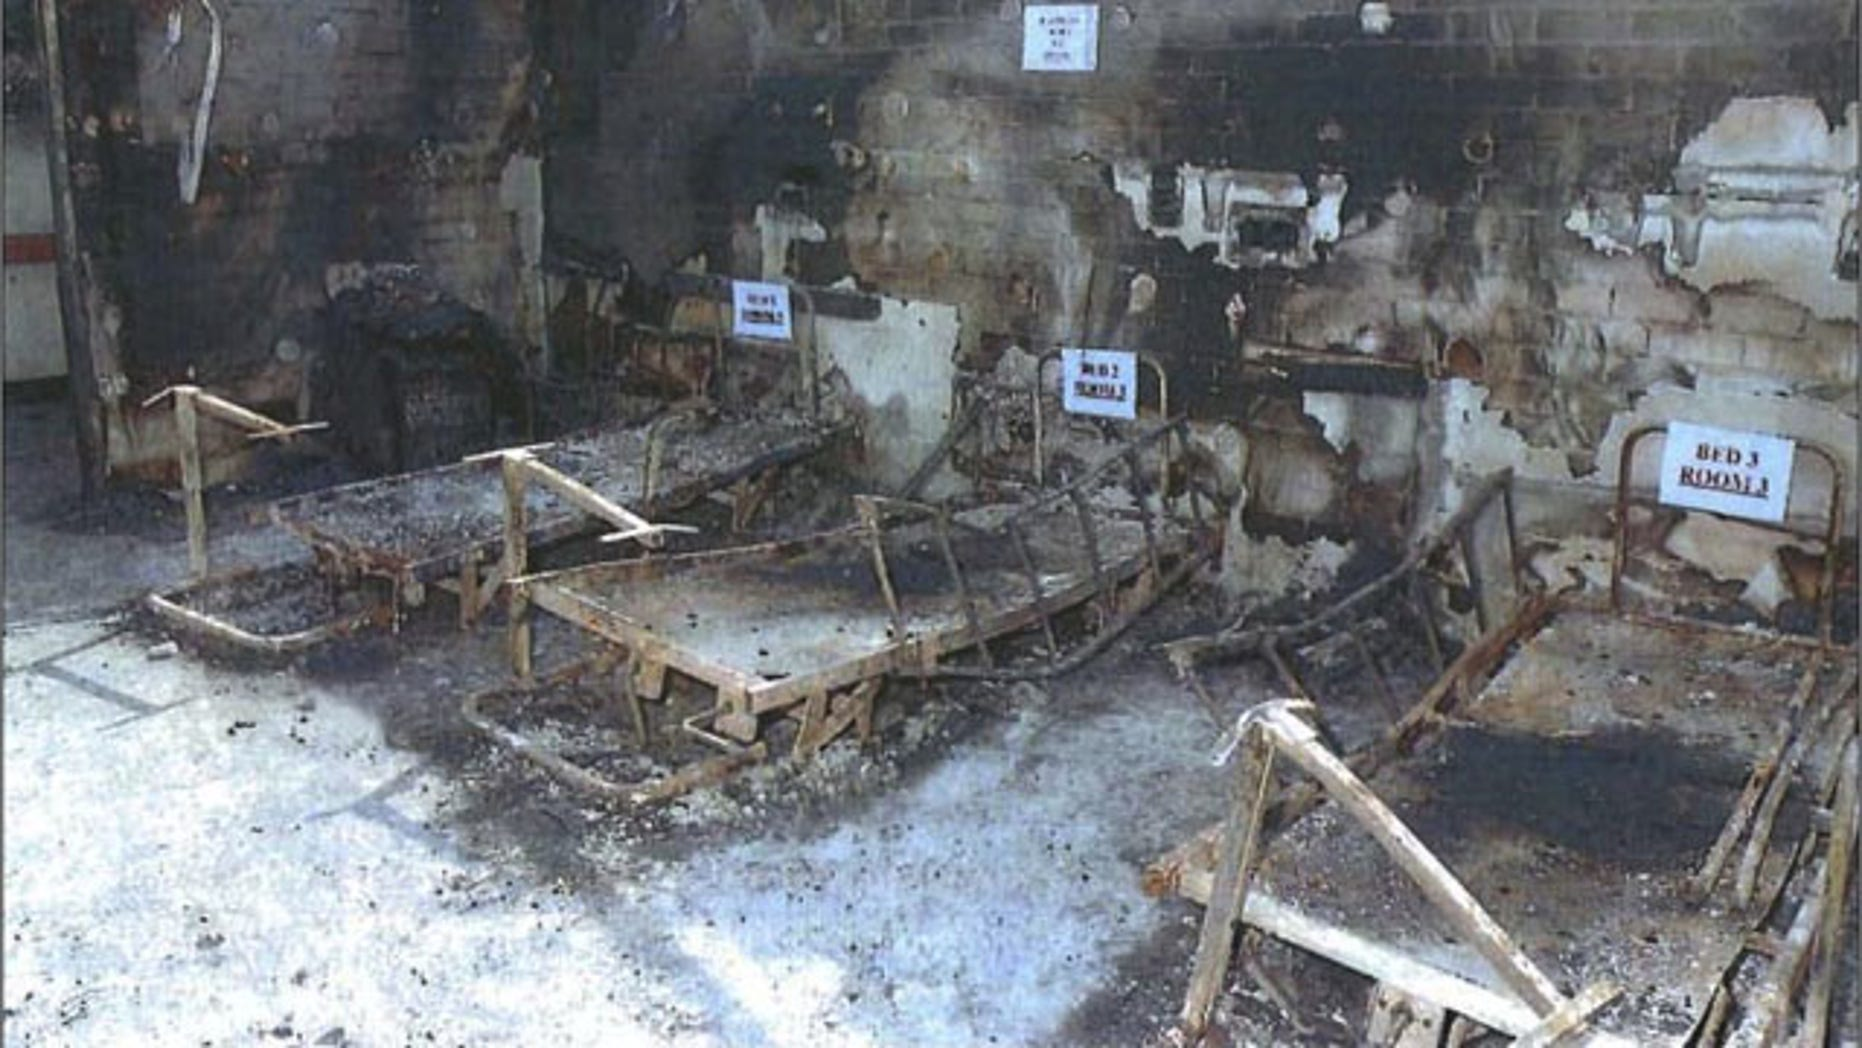 In this undated photo provided by the Office of the Director of Public Prosecutions (DPP) in Australia, evidence is labeled at the scene of a deadly nursing home fire in the Sydney suburb of Quakers Hill. (AP Photo)